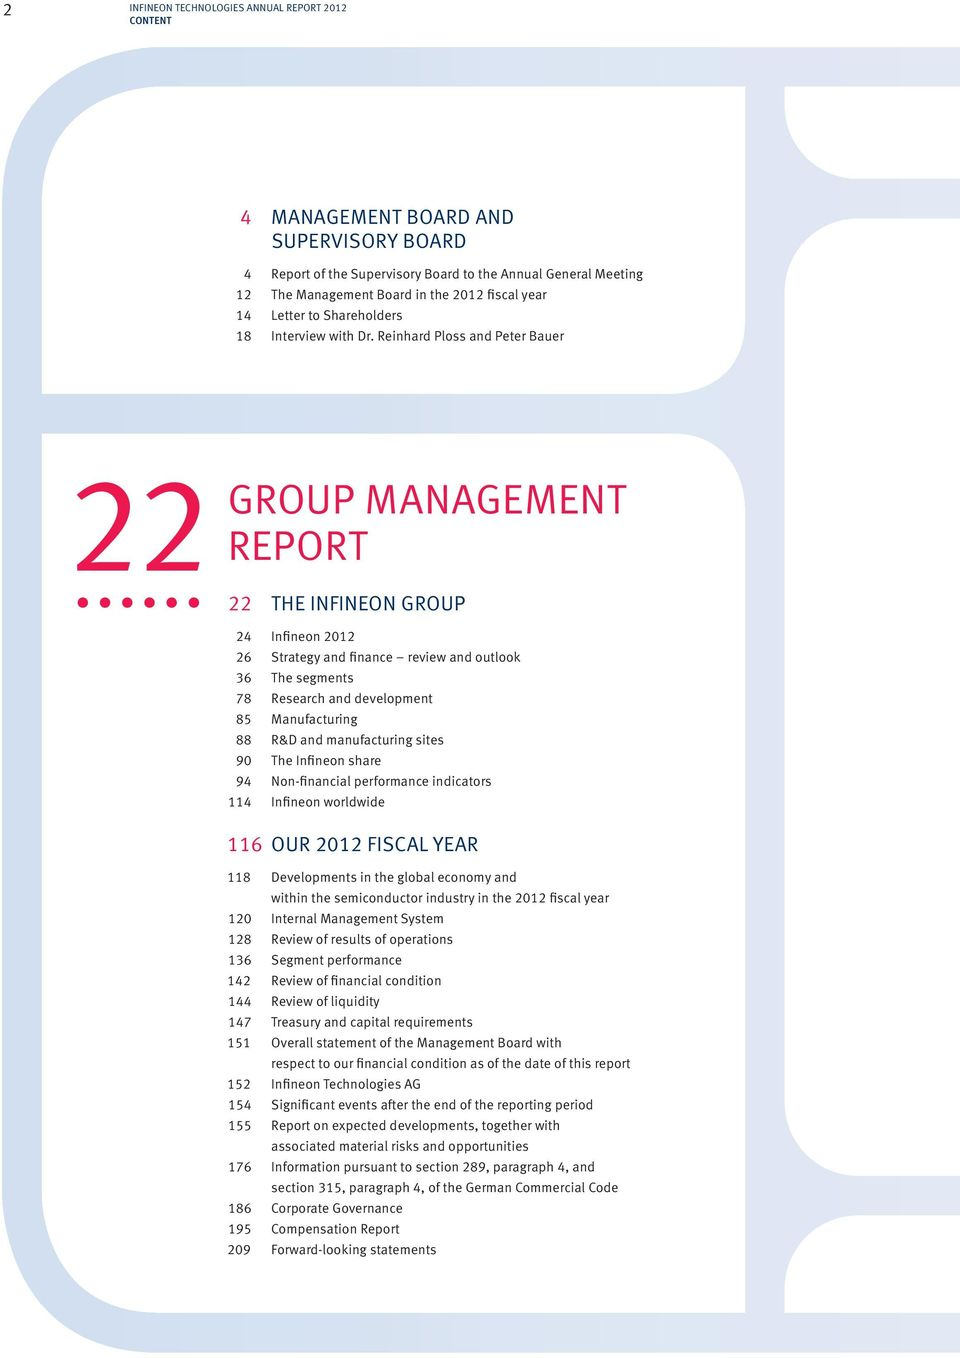 Reinhard Ploss and Peter Bauer 22 GROUP MANAGEMENT REPORT 22 THE INFINEON GROUP 24 Infineon 2012 26 Strategy and finance review and outlook 36 The segments 78 Research and development 85